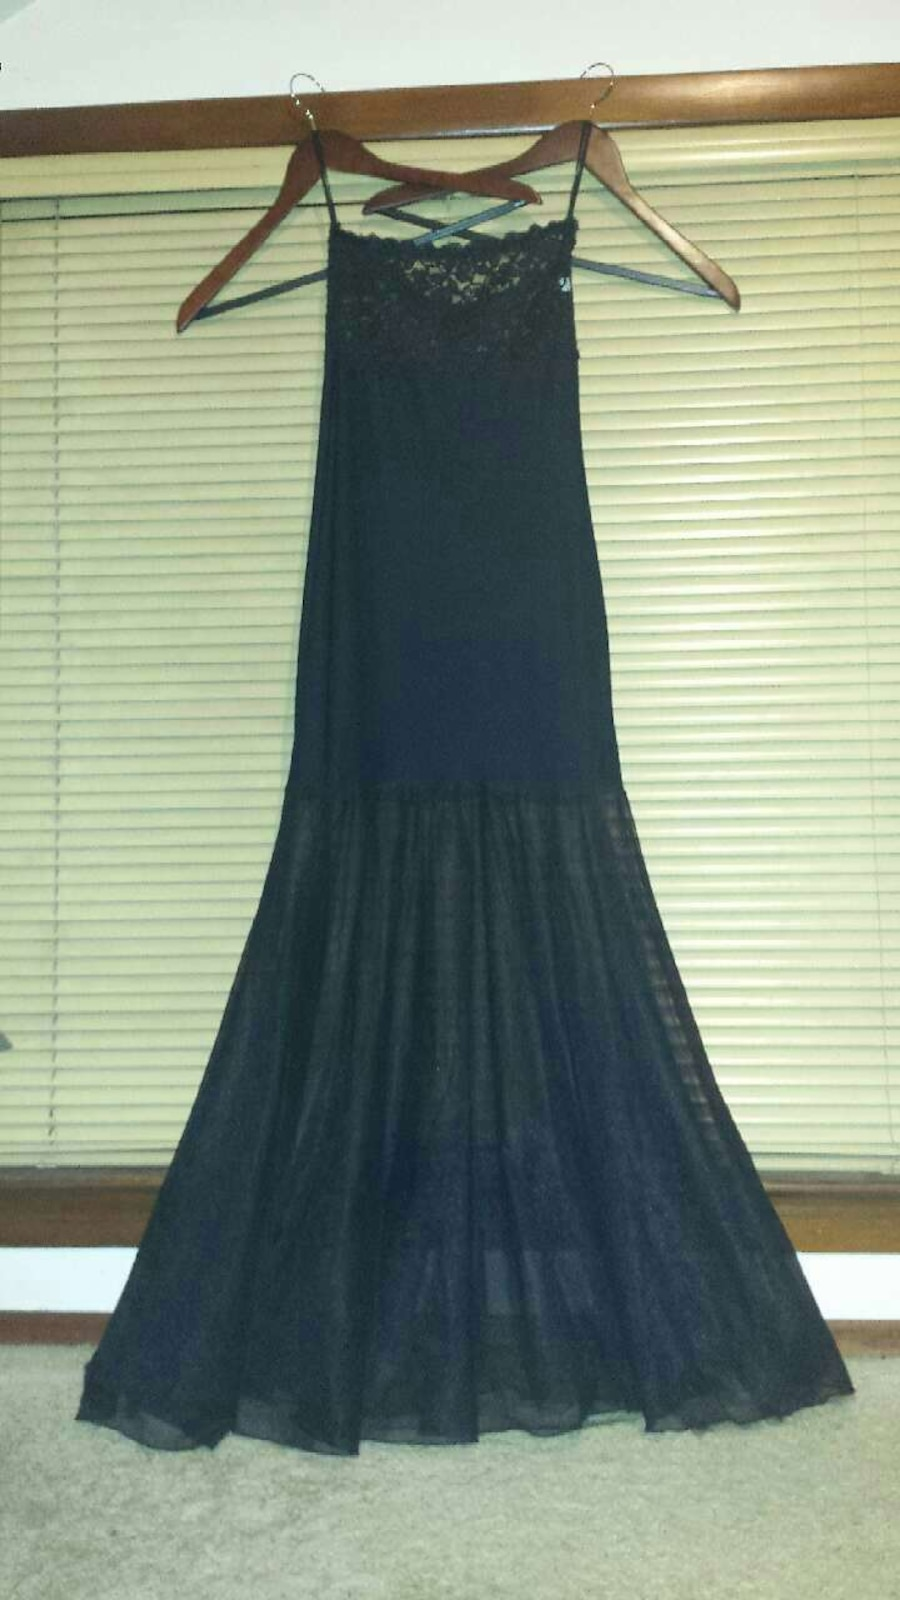 Petite S Fishnet and lace black babydoll gown $15